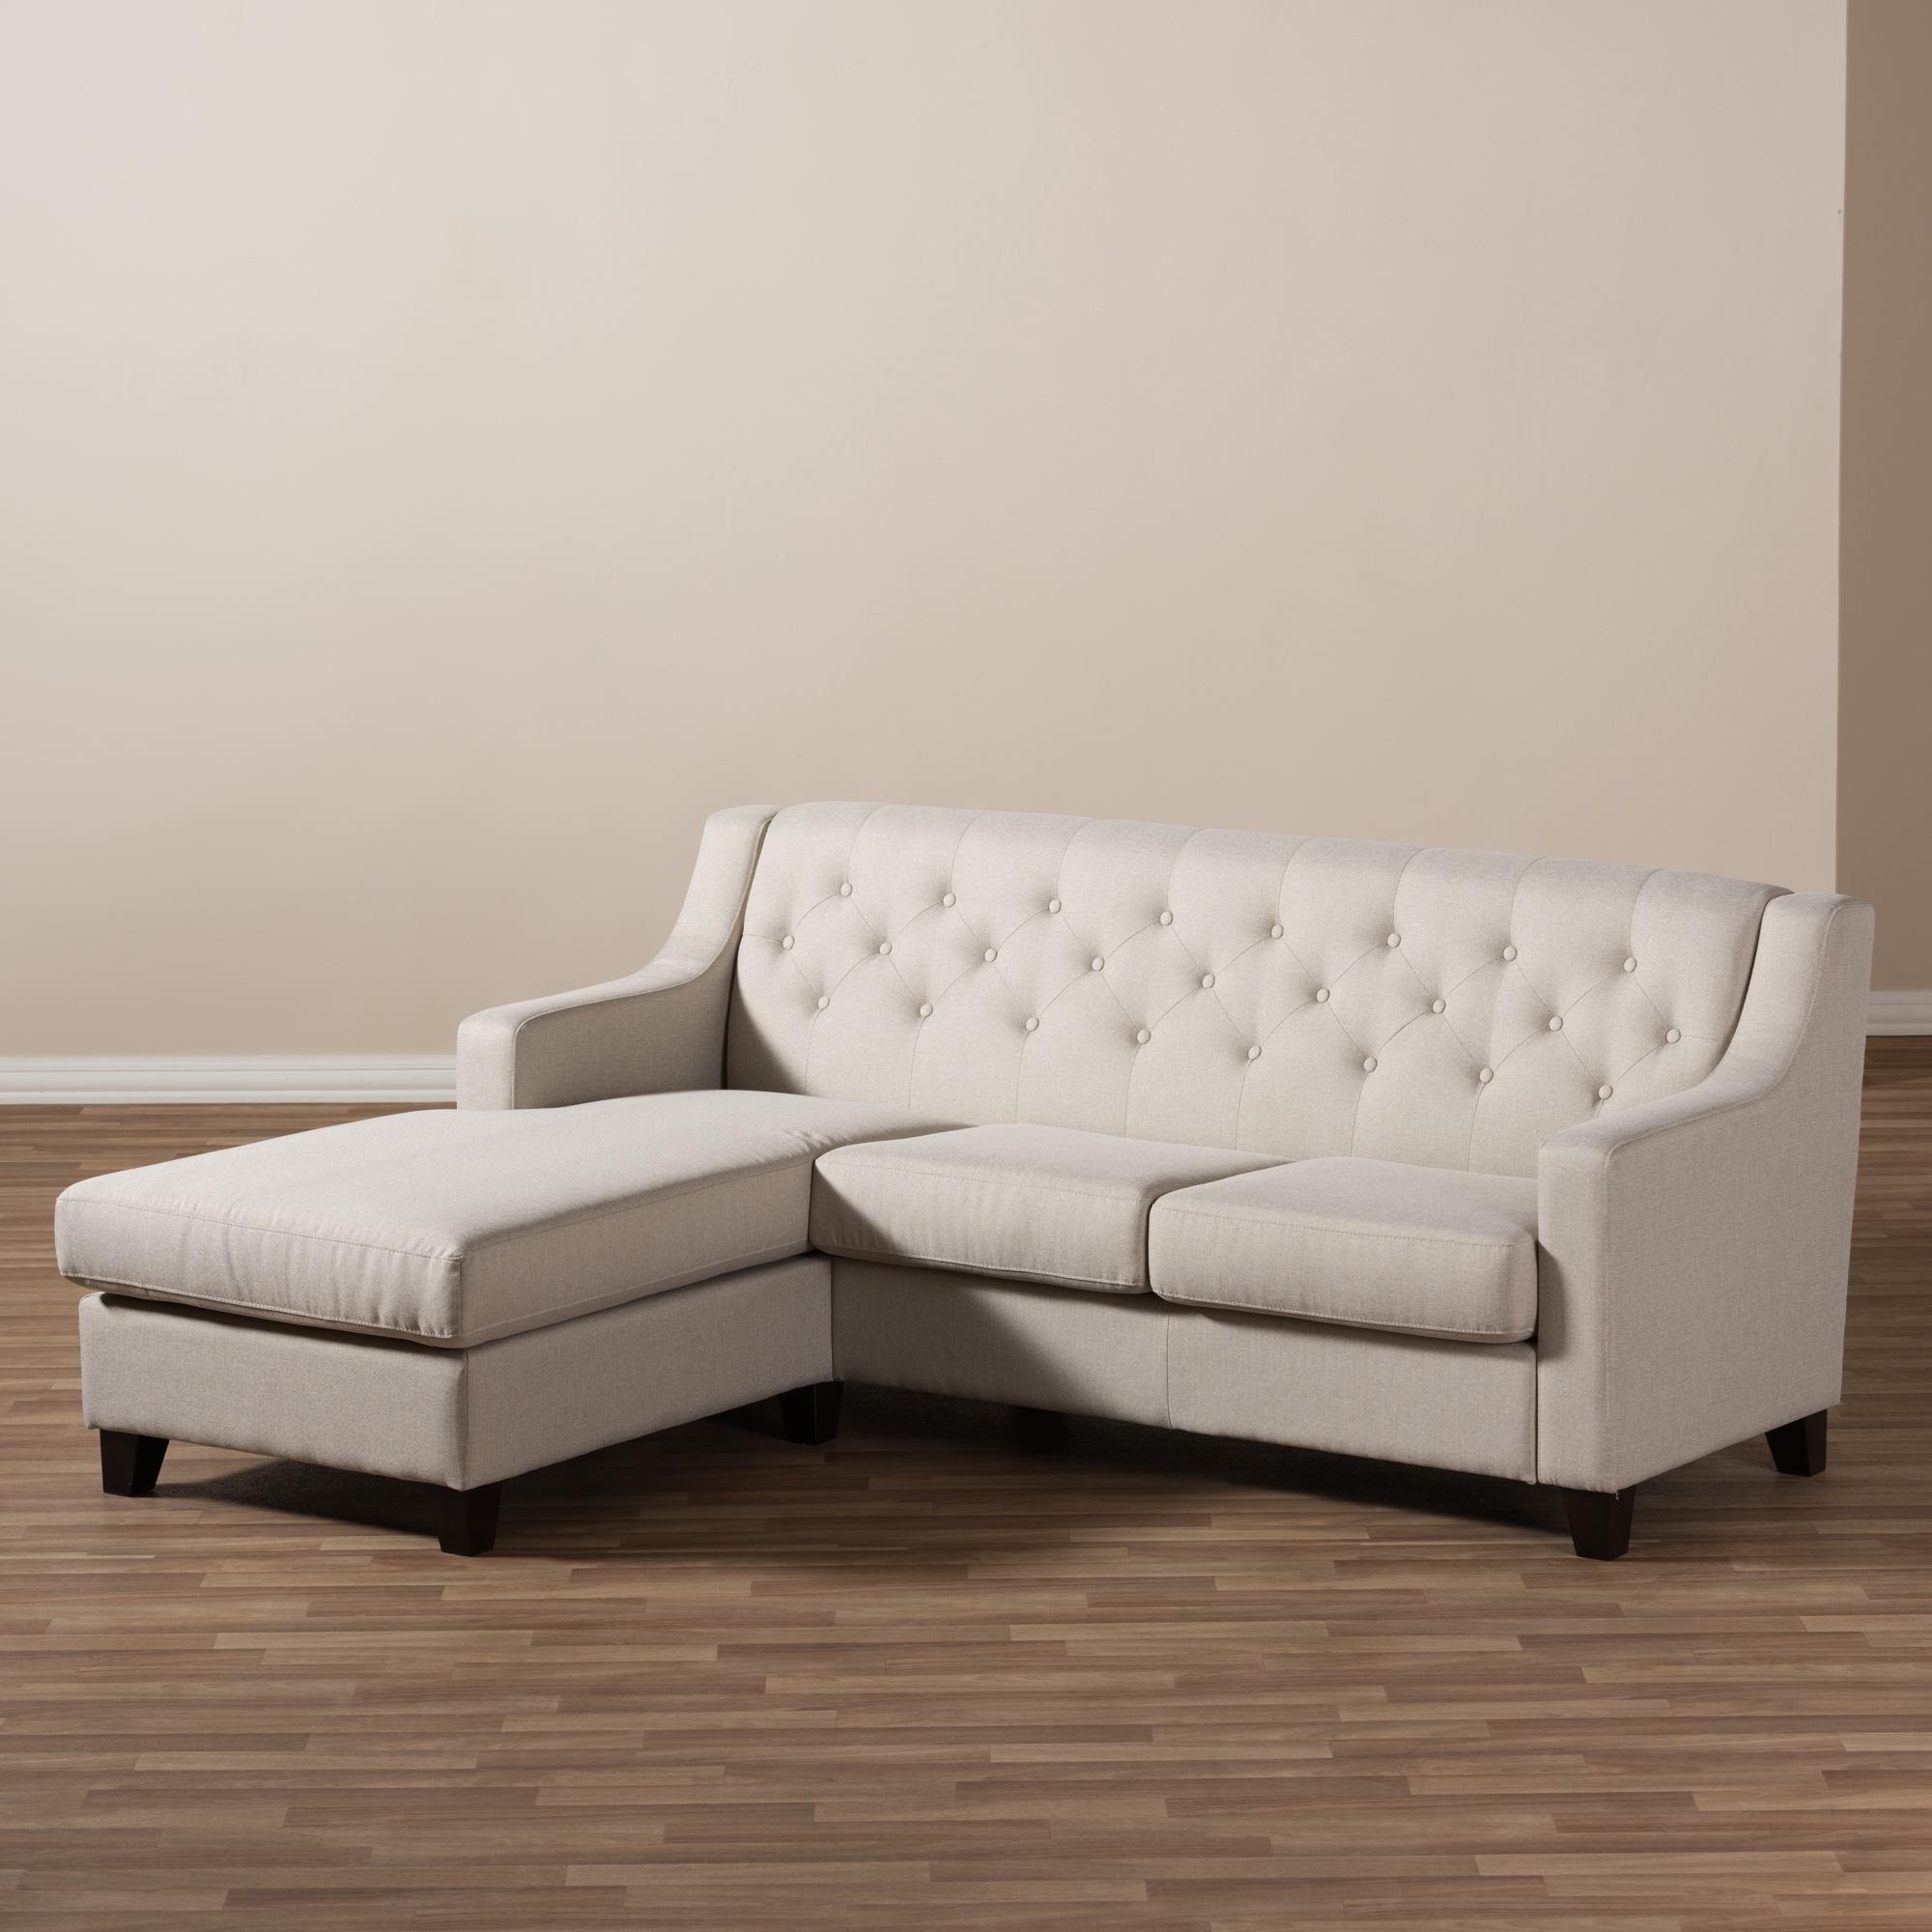 ... Baxton Studio Arcadia Light Beige Fabric Upholstered Button Tufted 2 Piece  Sectional Sofa ...